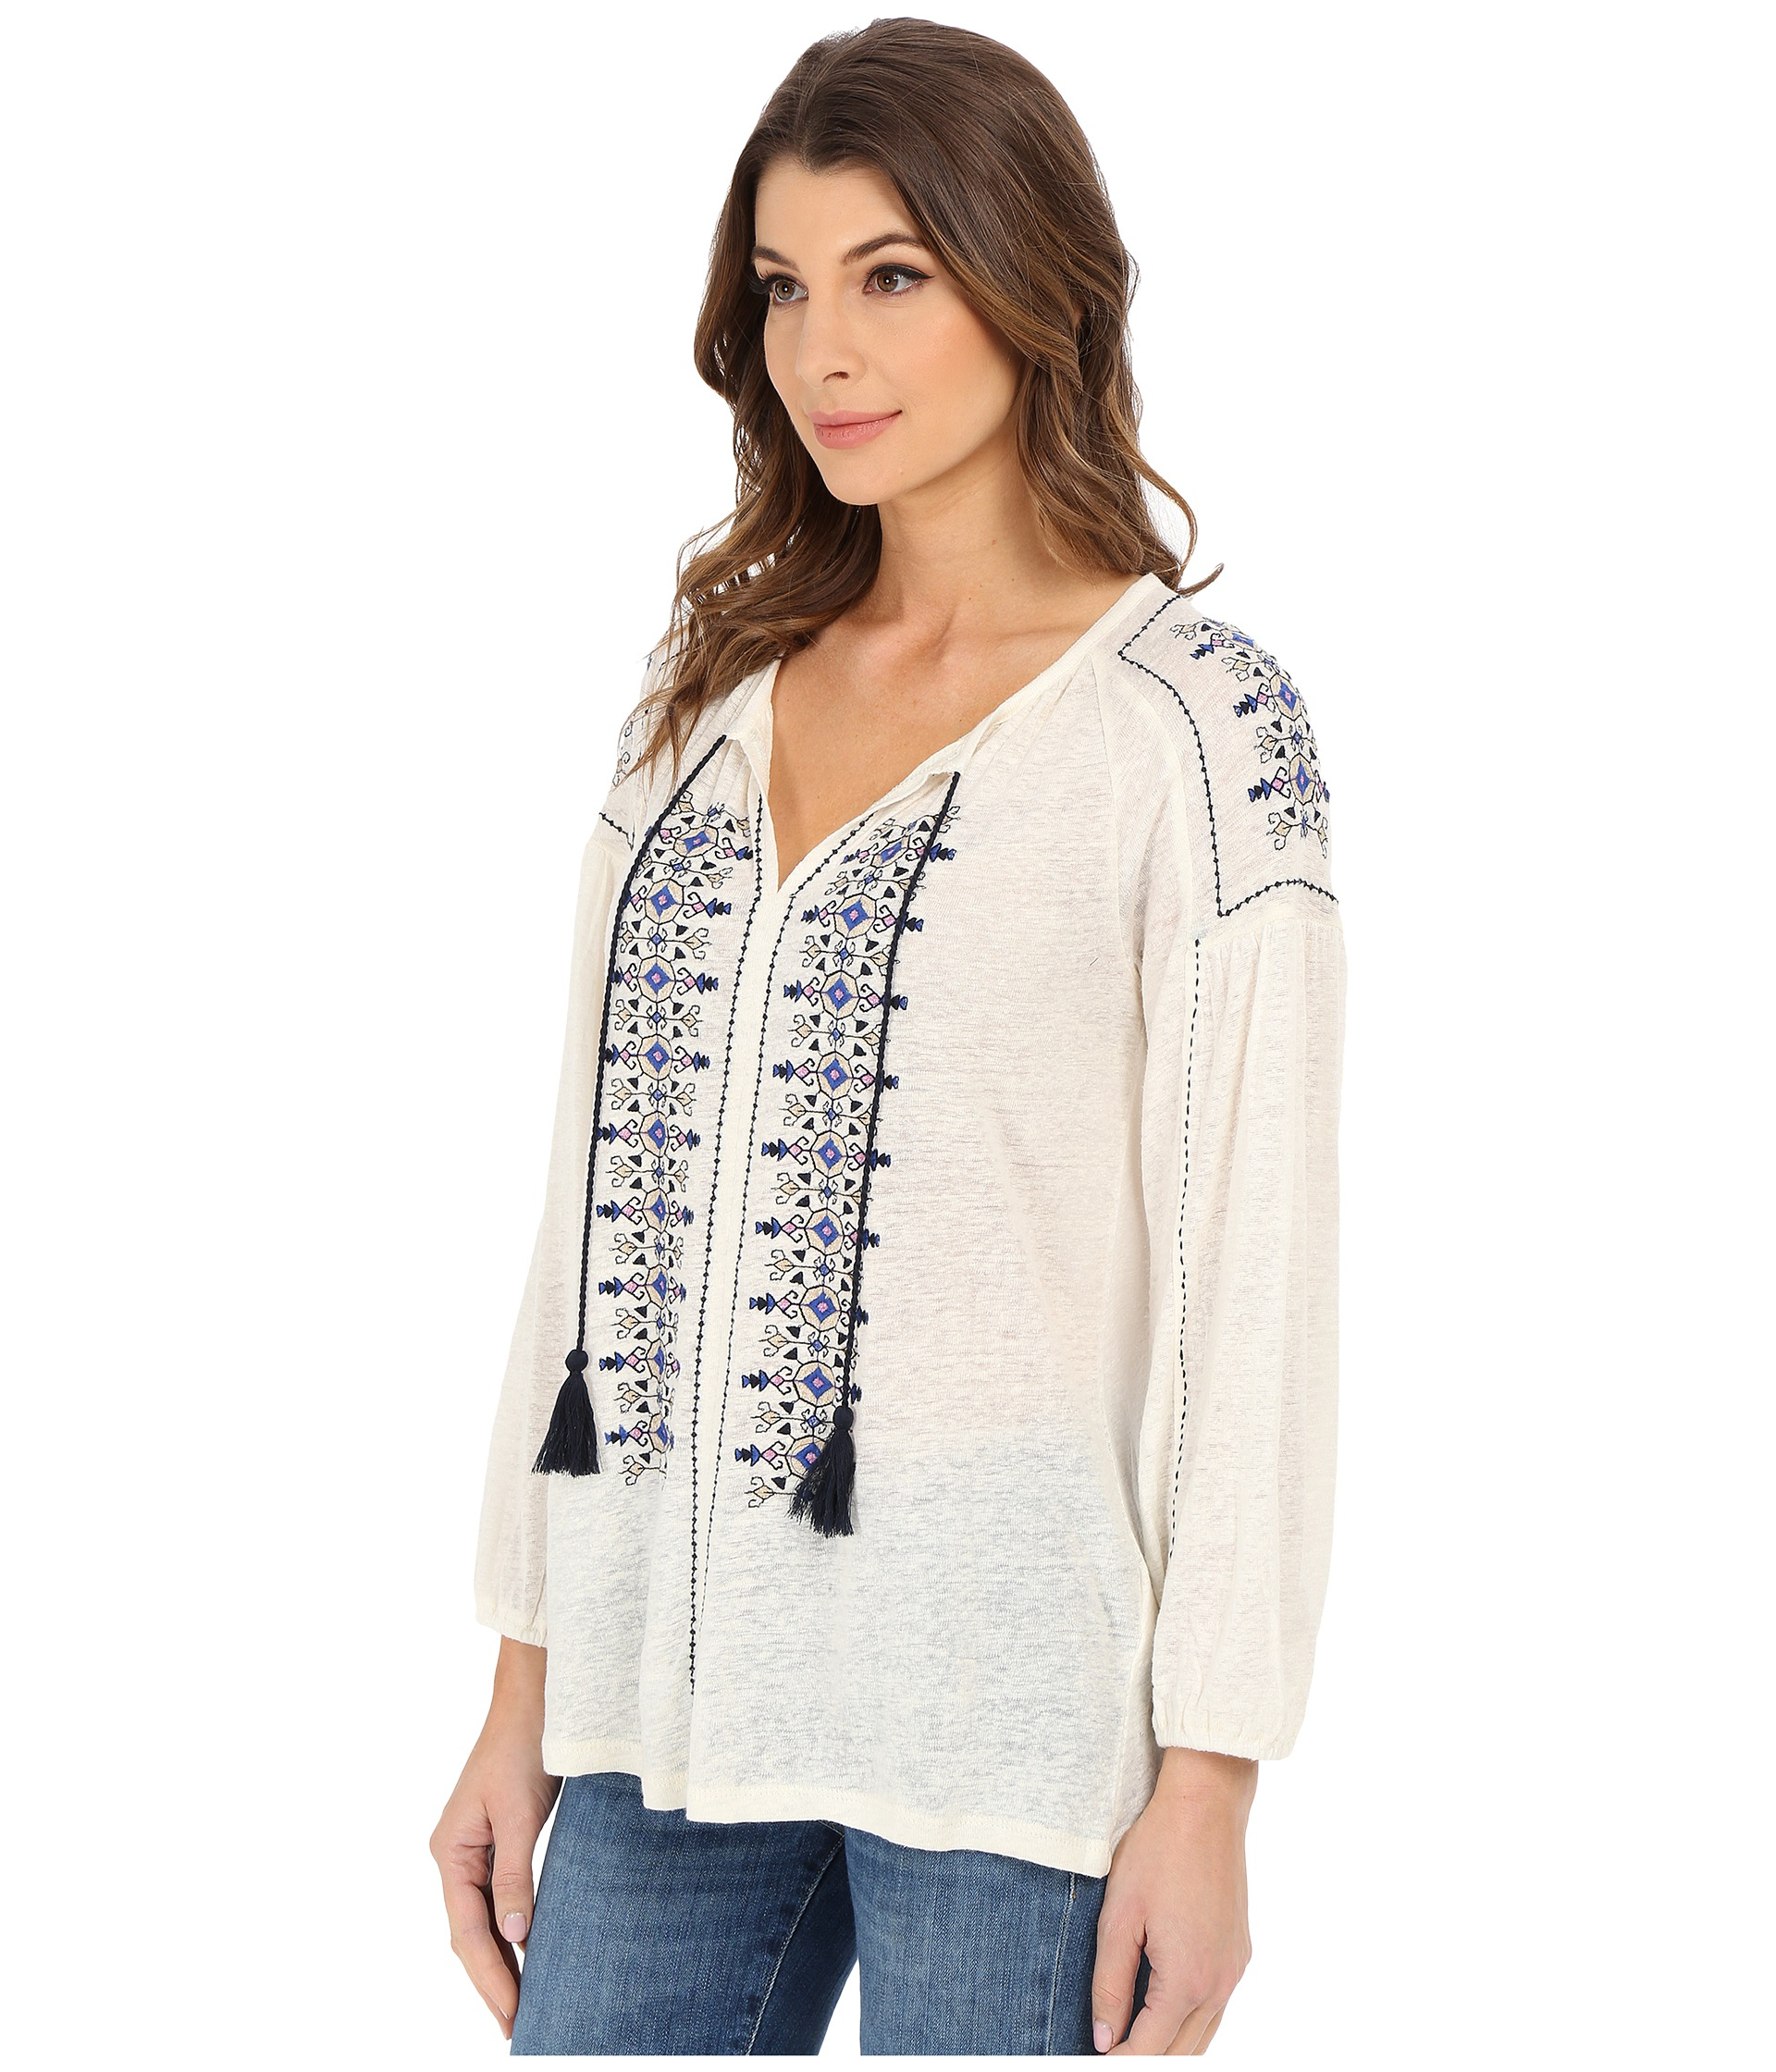 434cb5a7f7a182 Lucky Brand Embroidered Peasant Top in White - Lyst